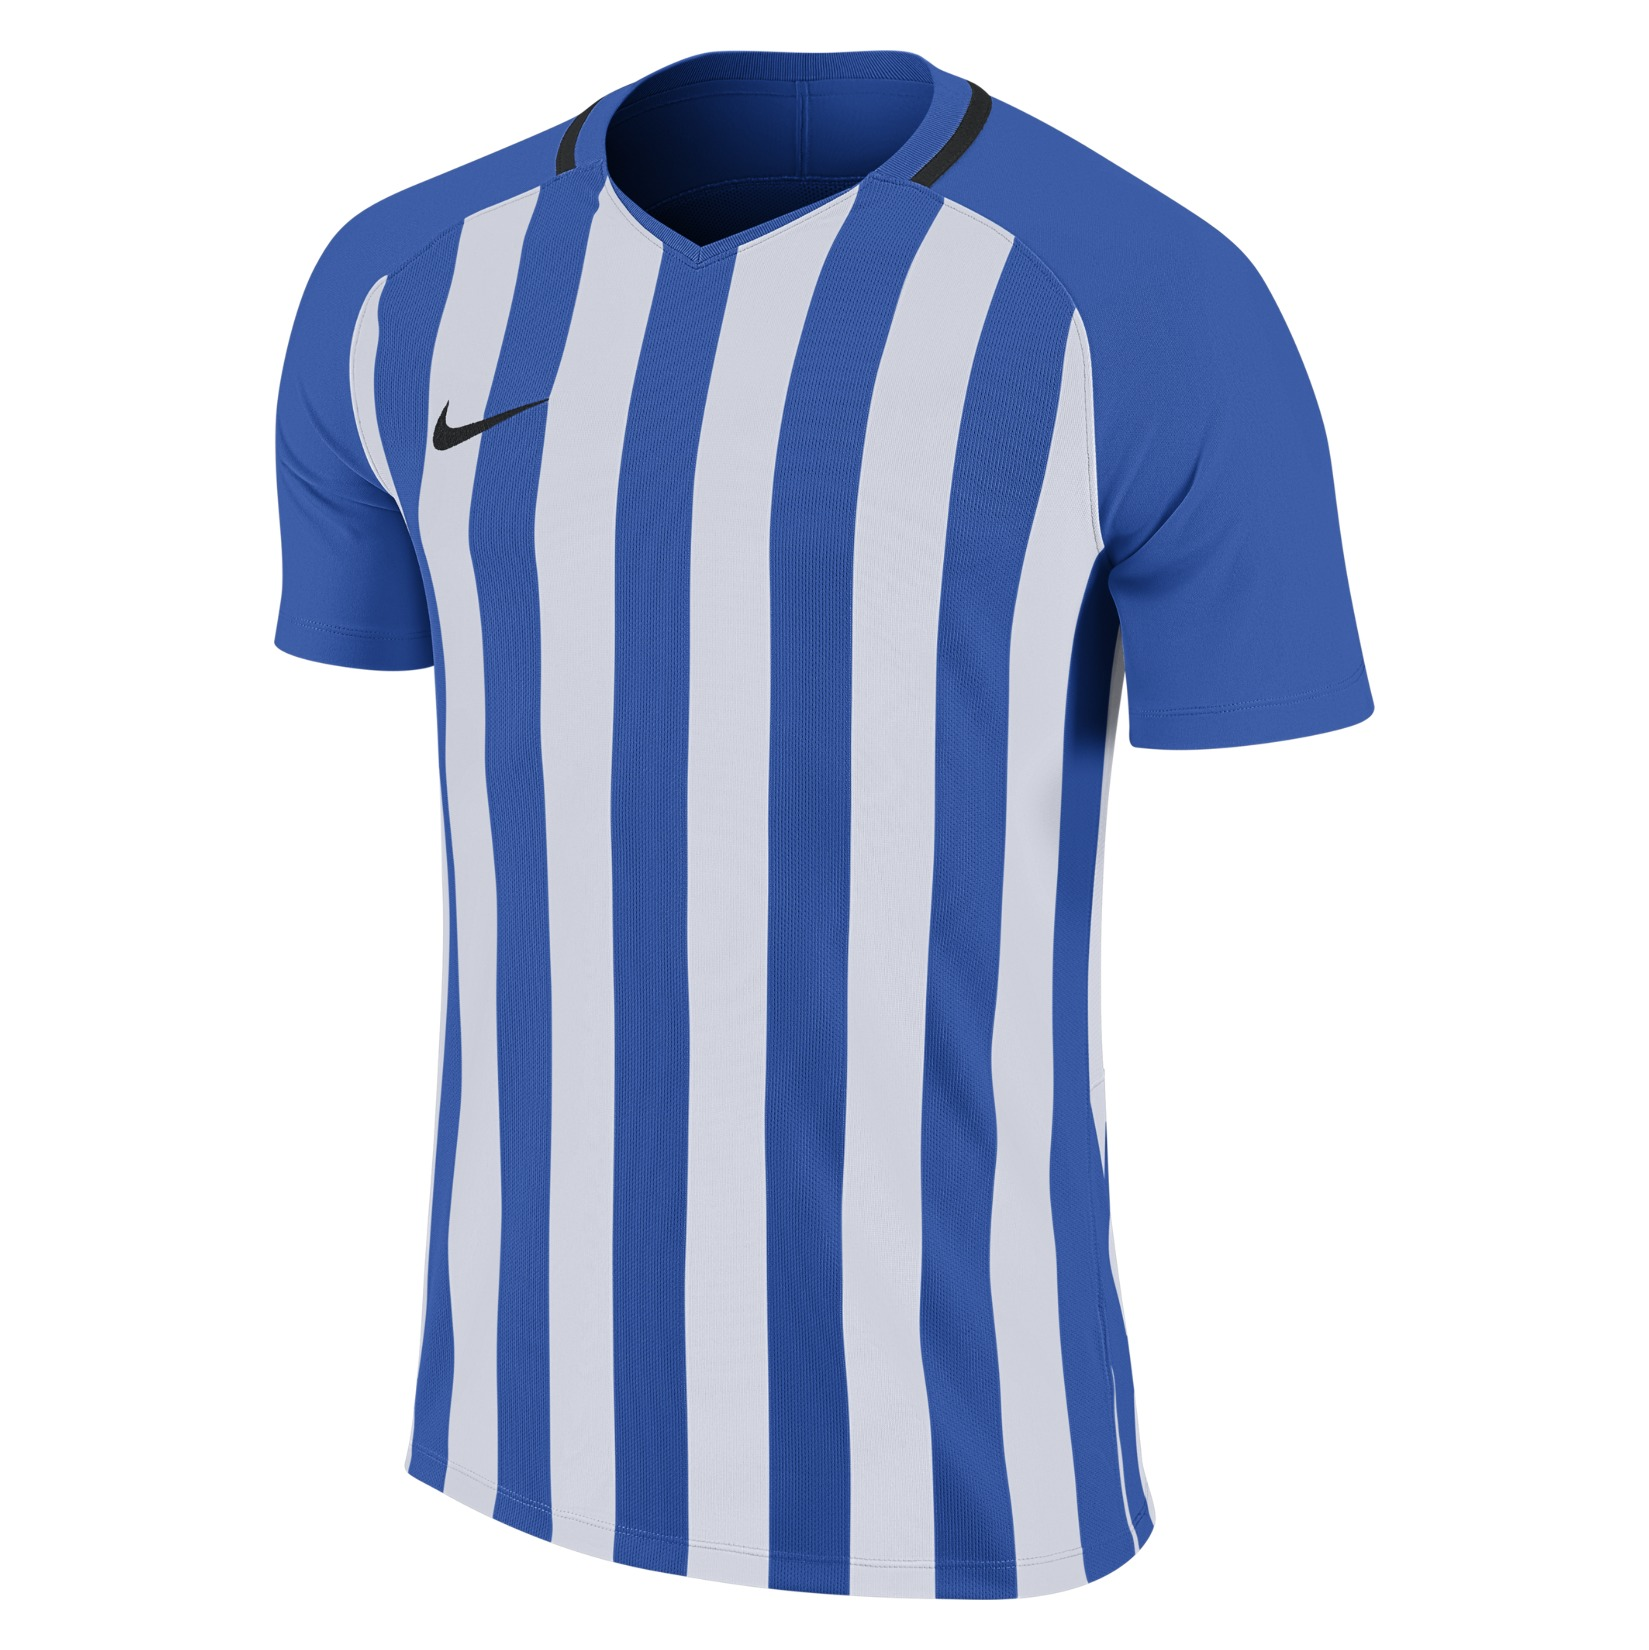 Nike Striped Division III Short Sleeve Shirt Royal Blue-White-Black-Black